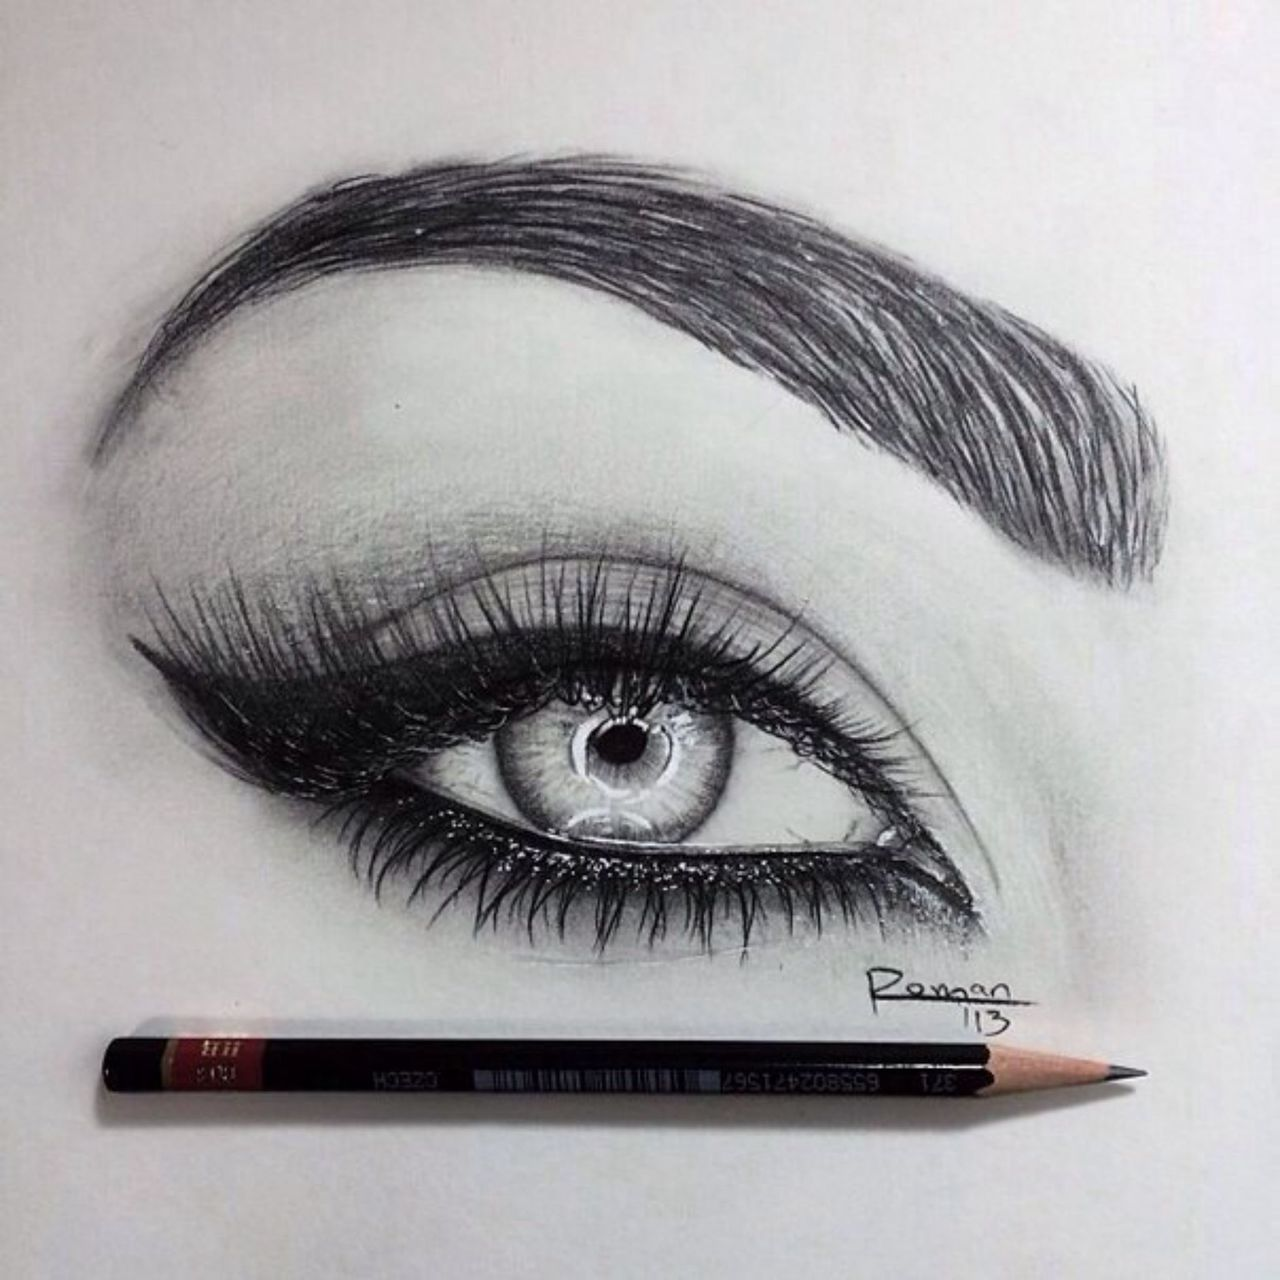 Drawn paper eyebrow On by about We fashion